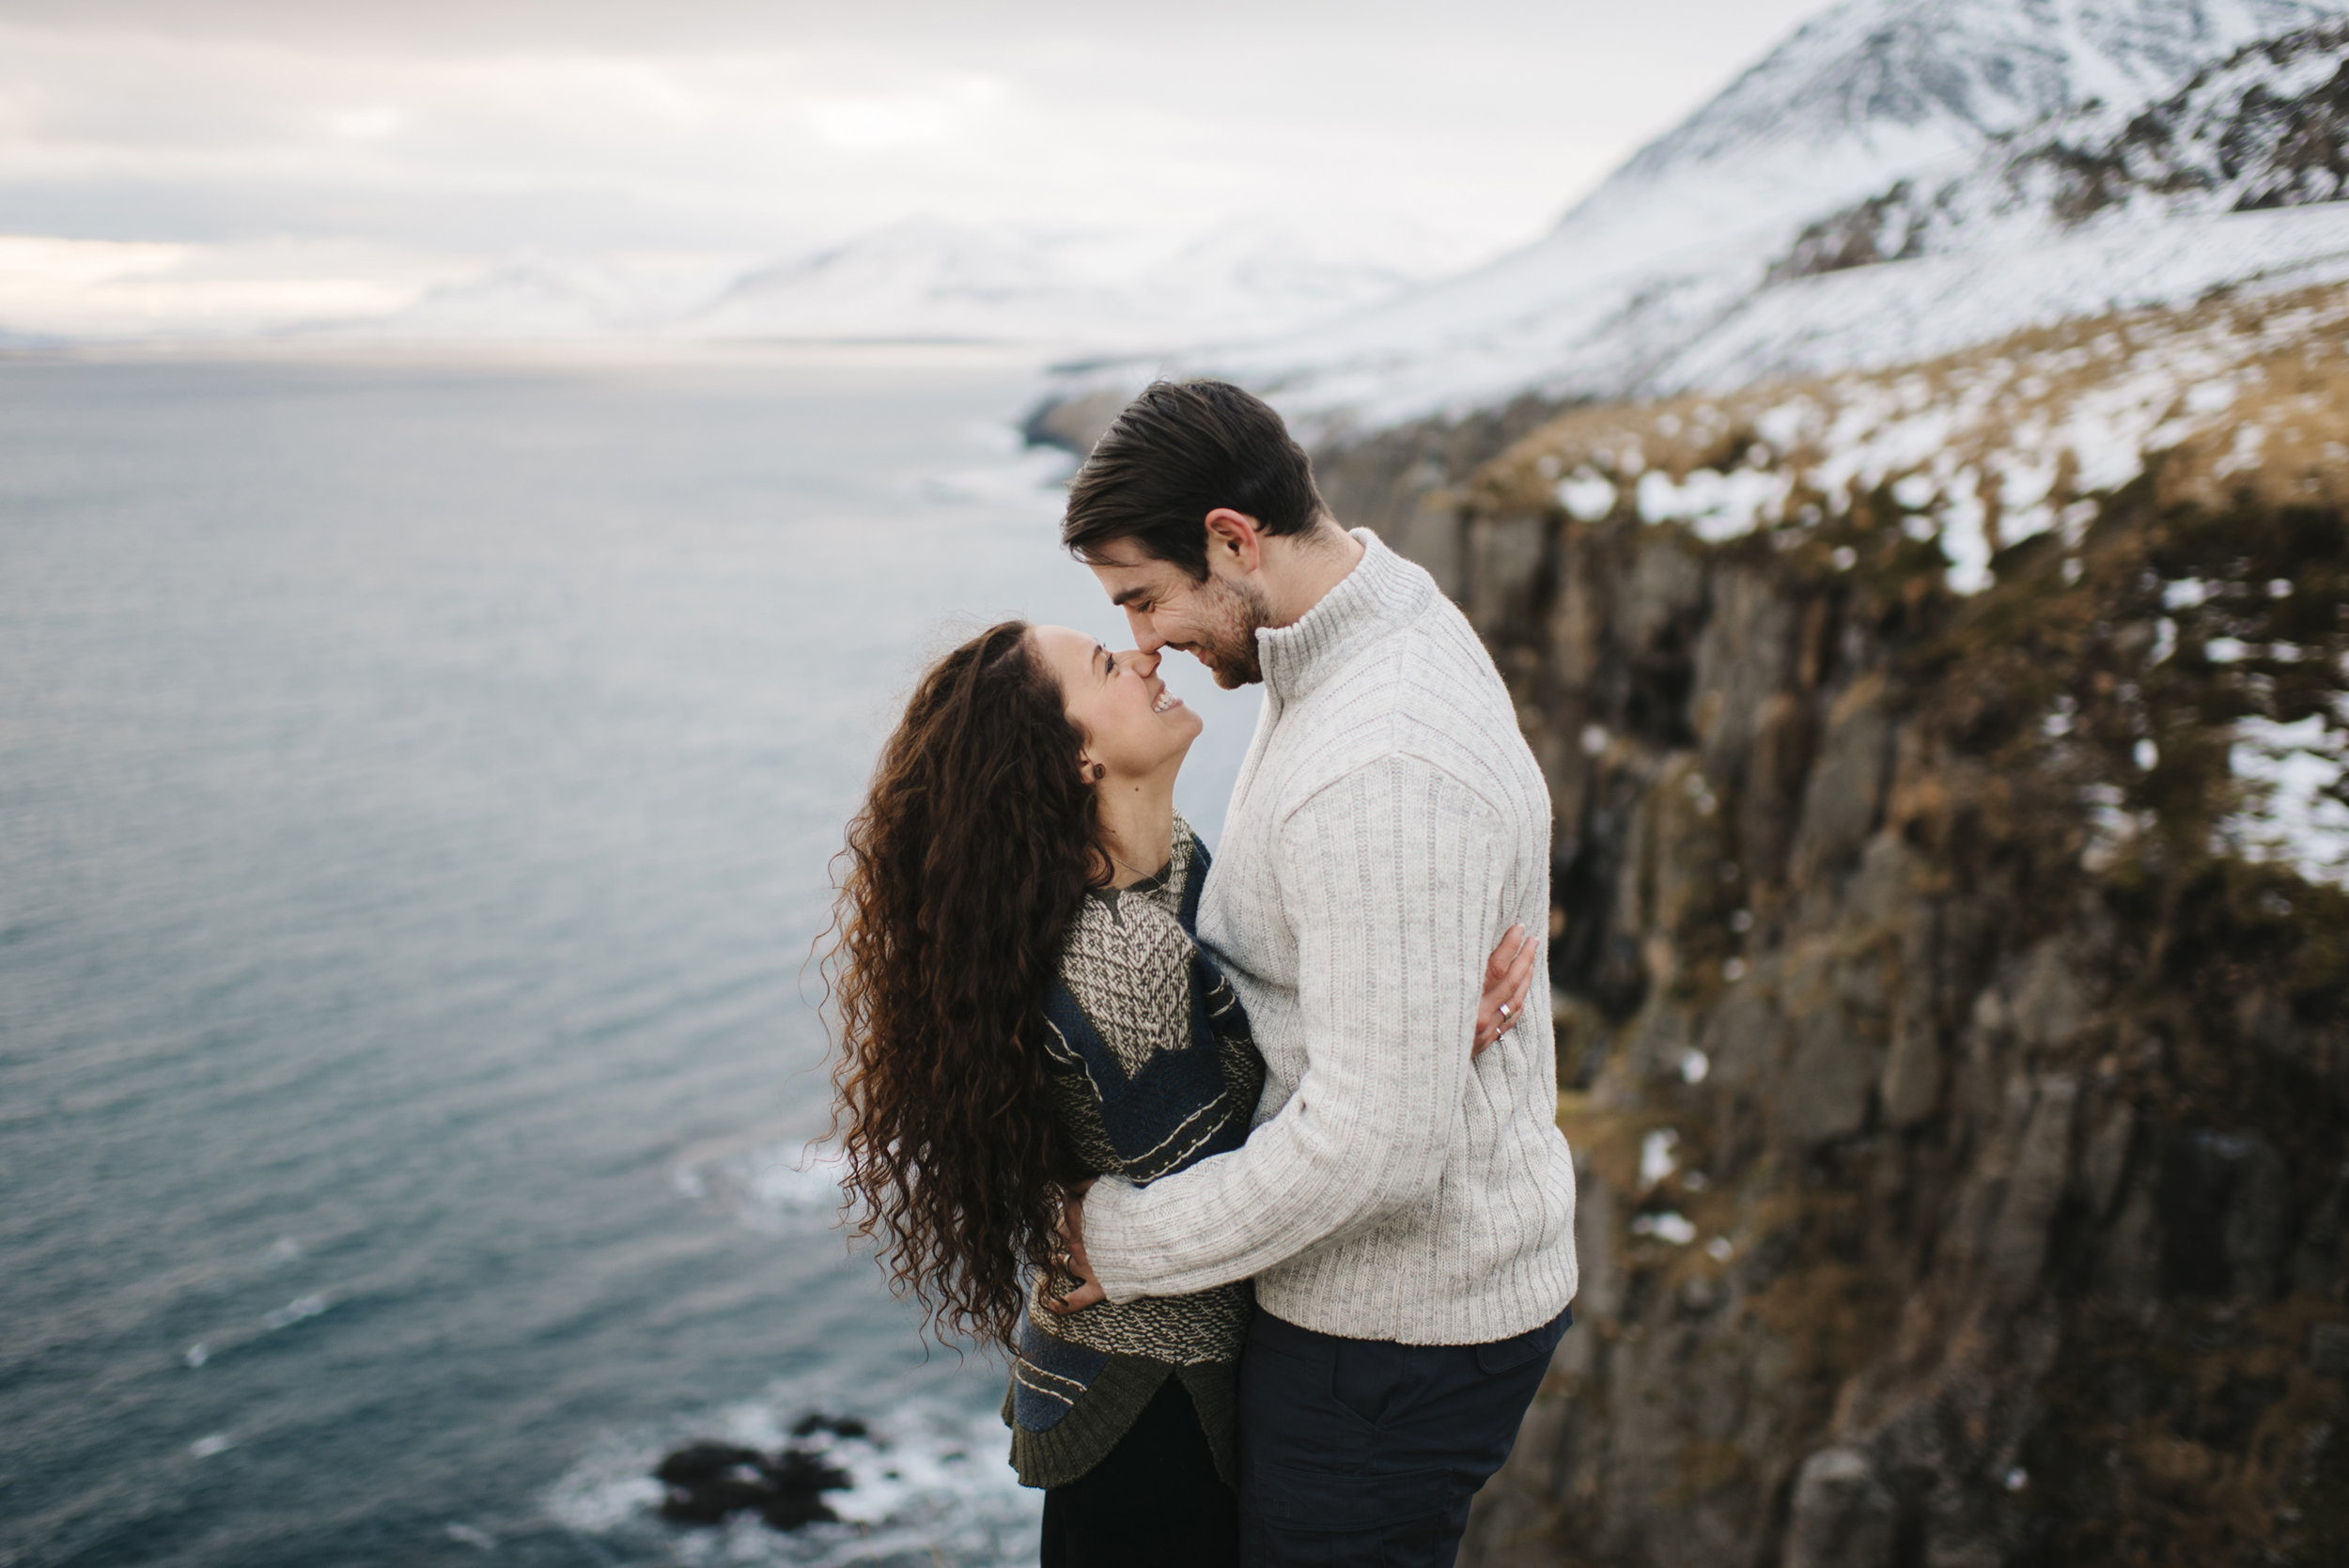 Iceland Adventure Engagement Photographer140.JPG